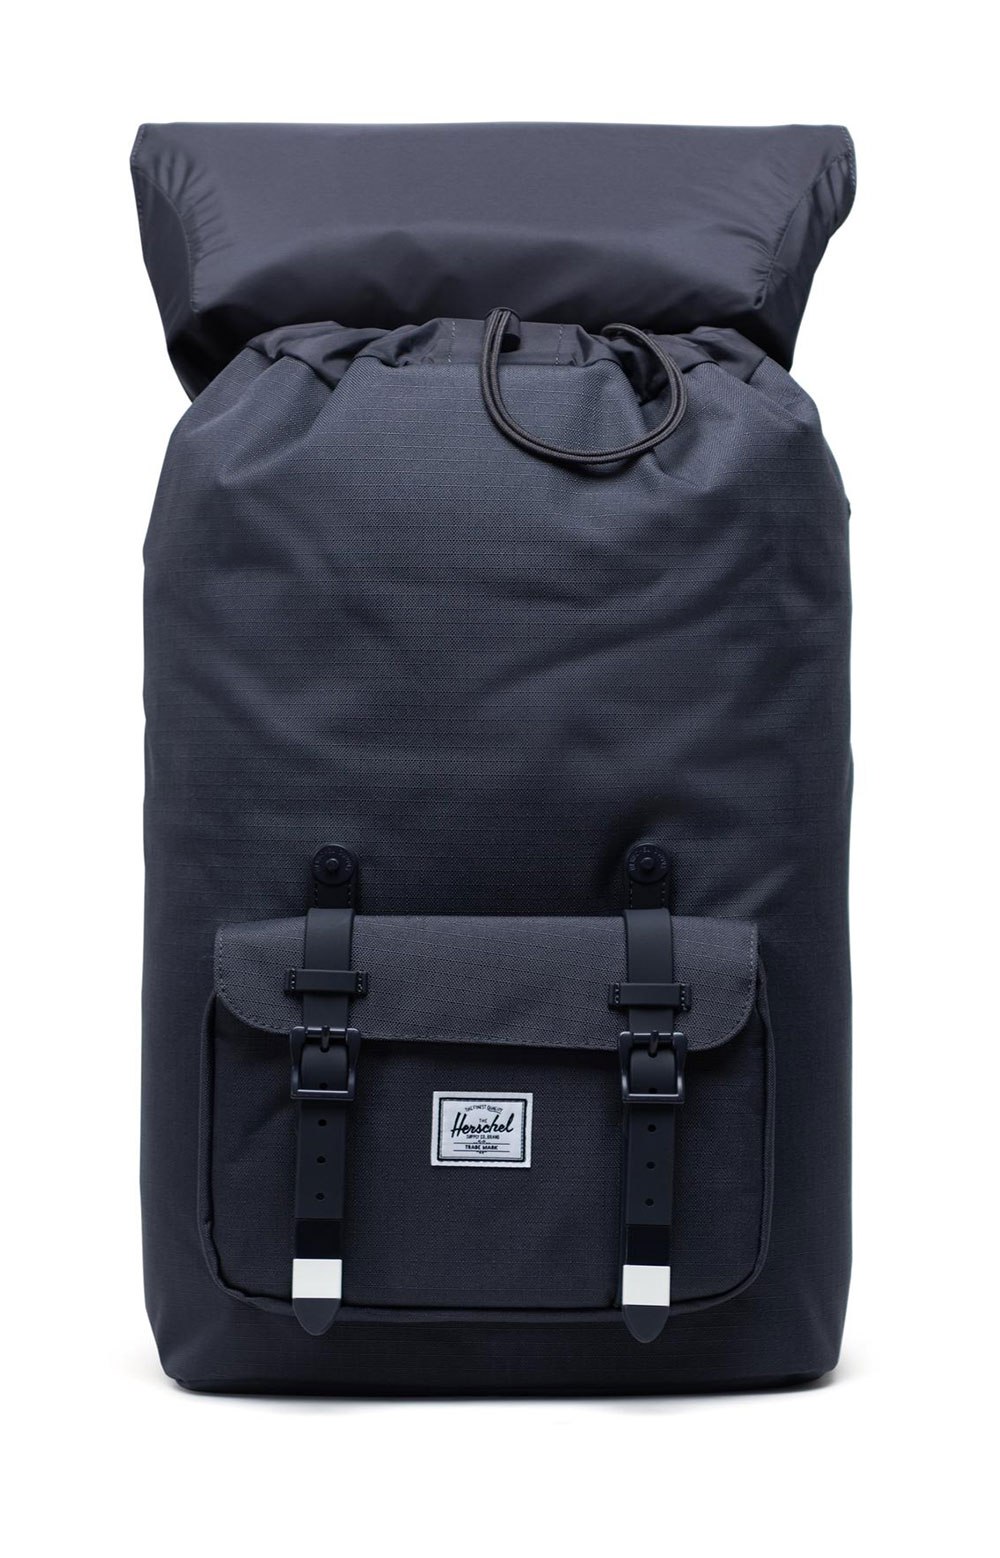 Little America Backpack - Periscope Ripstop  2